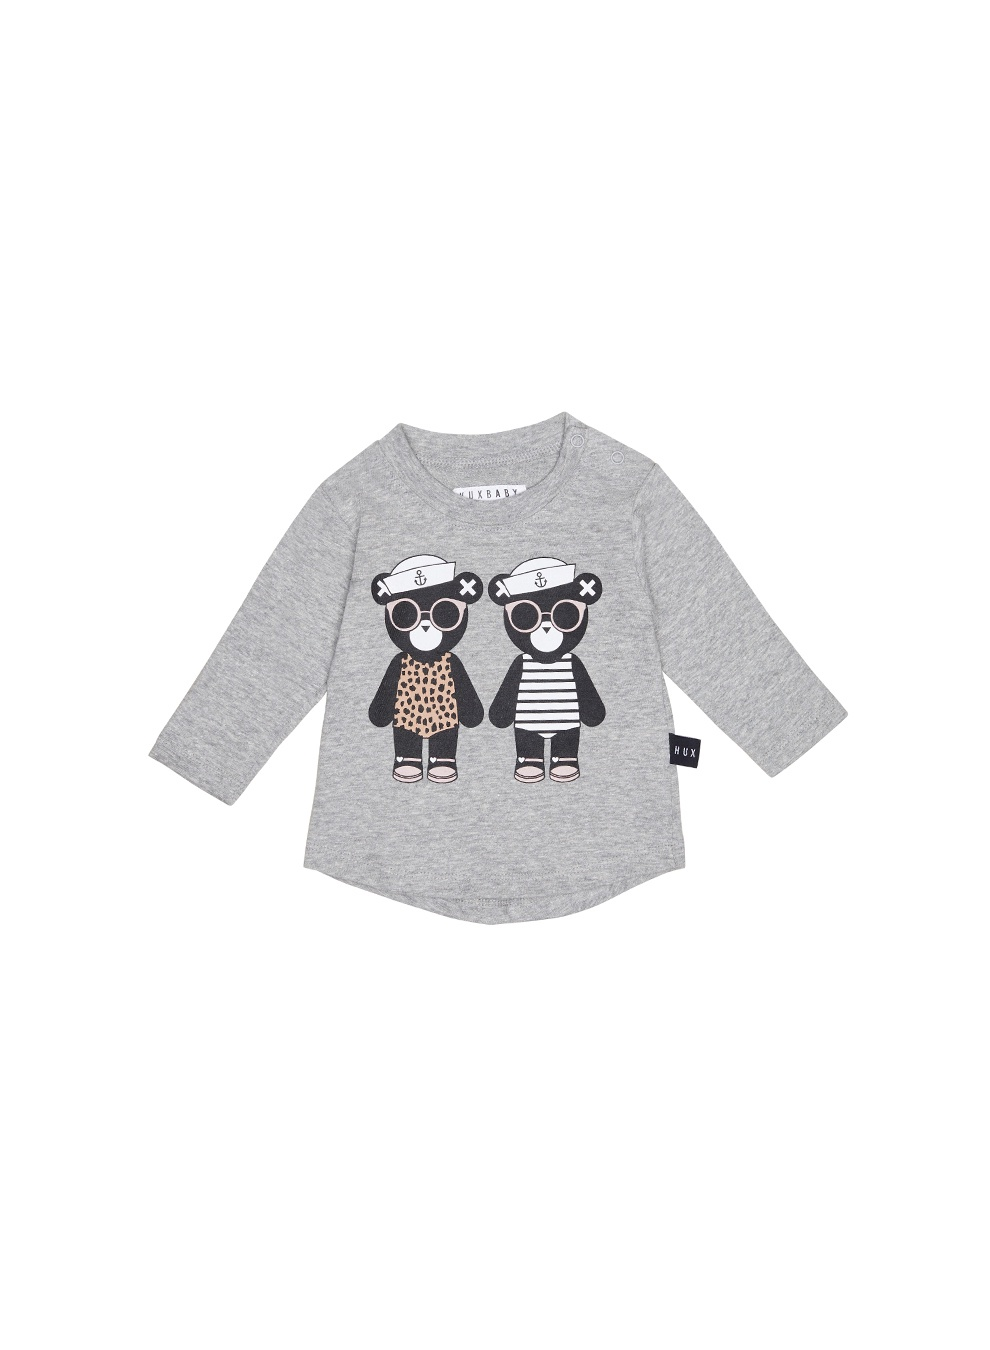 TWIN L/S TOP KIDS